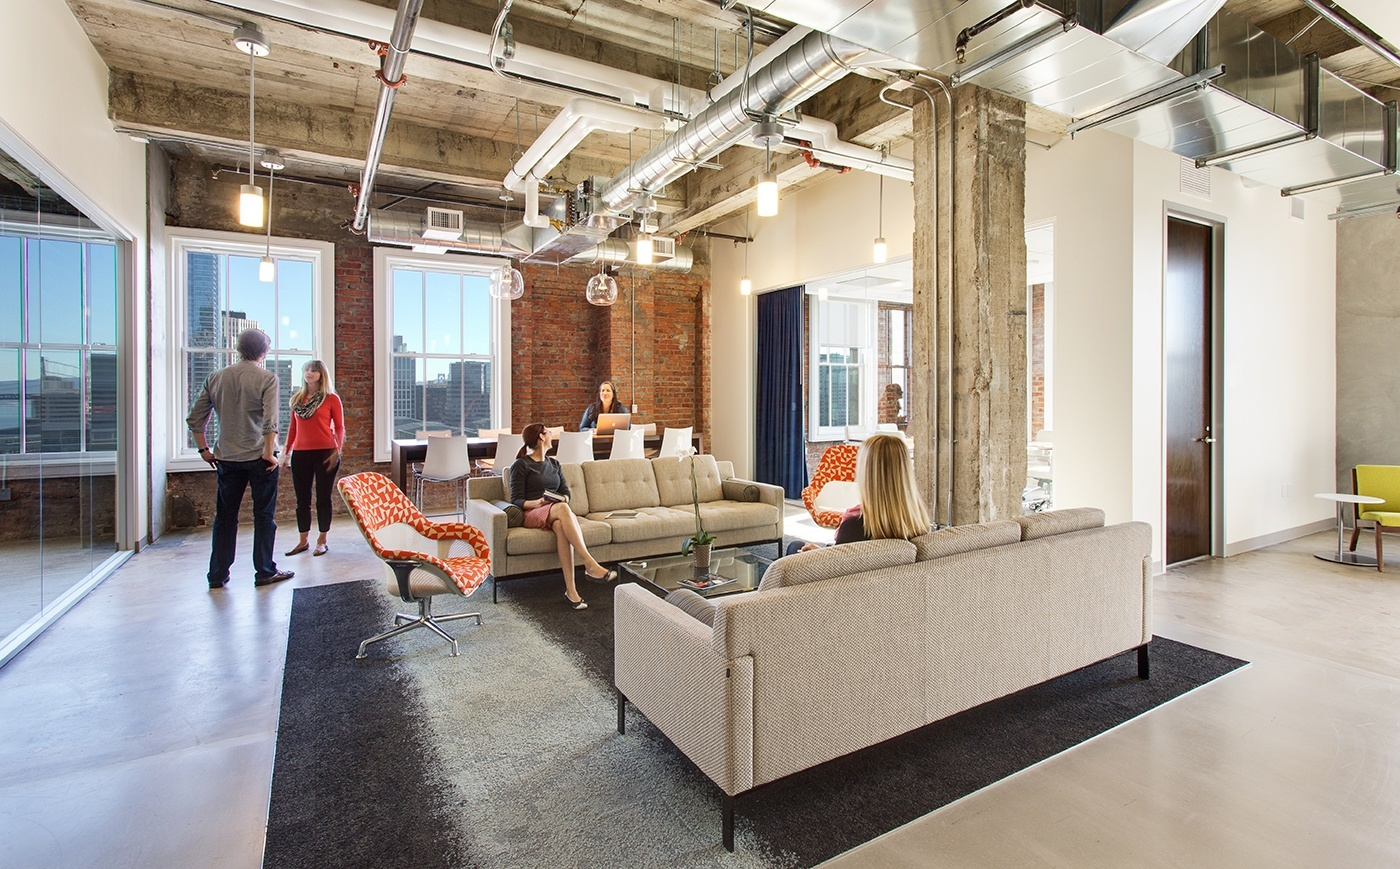 An office lounge area for activity-based working in an open office layout